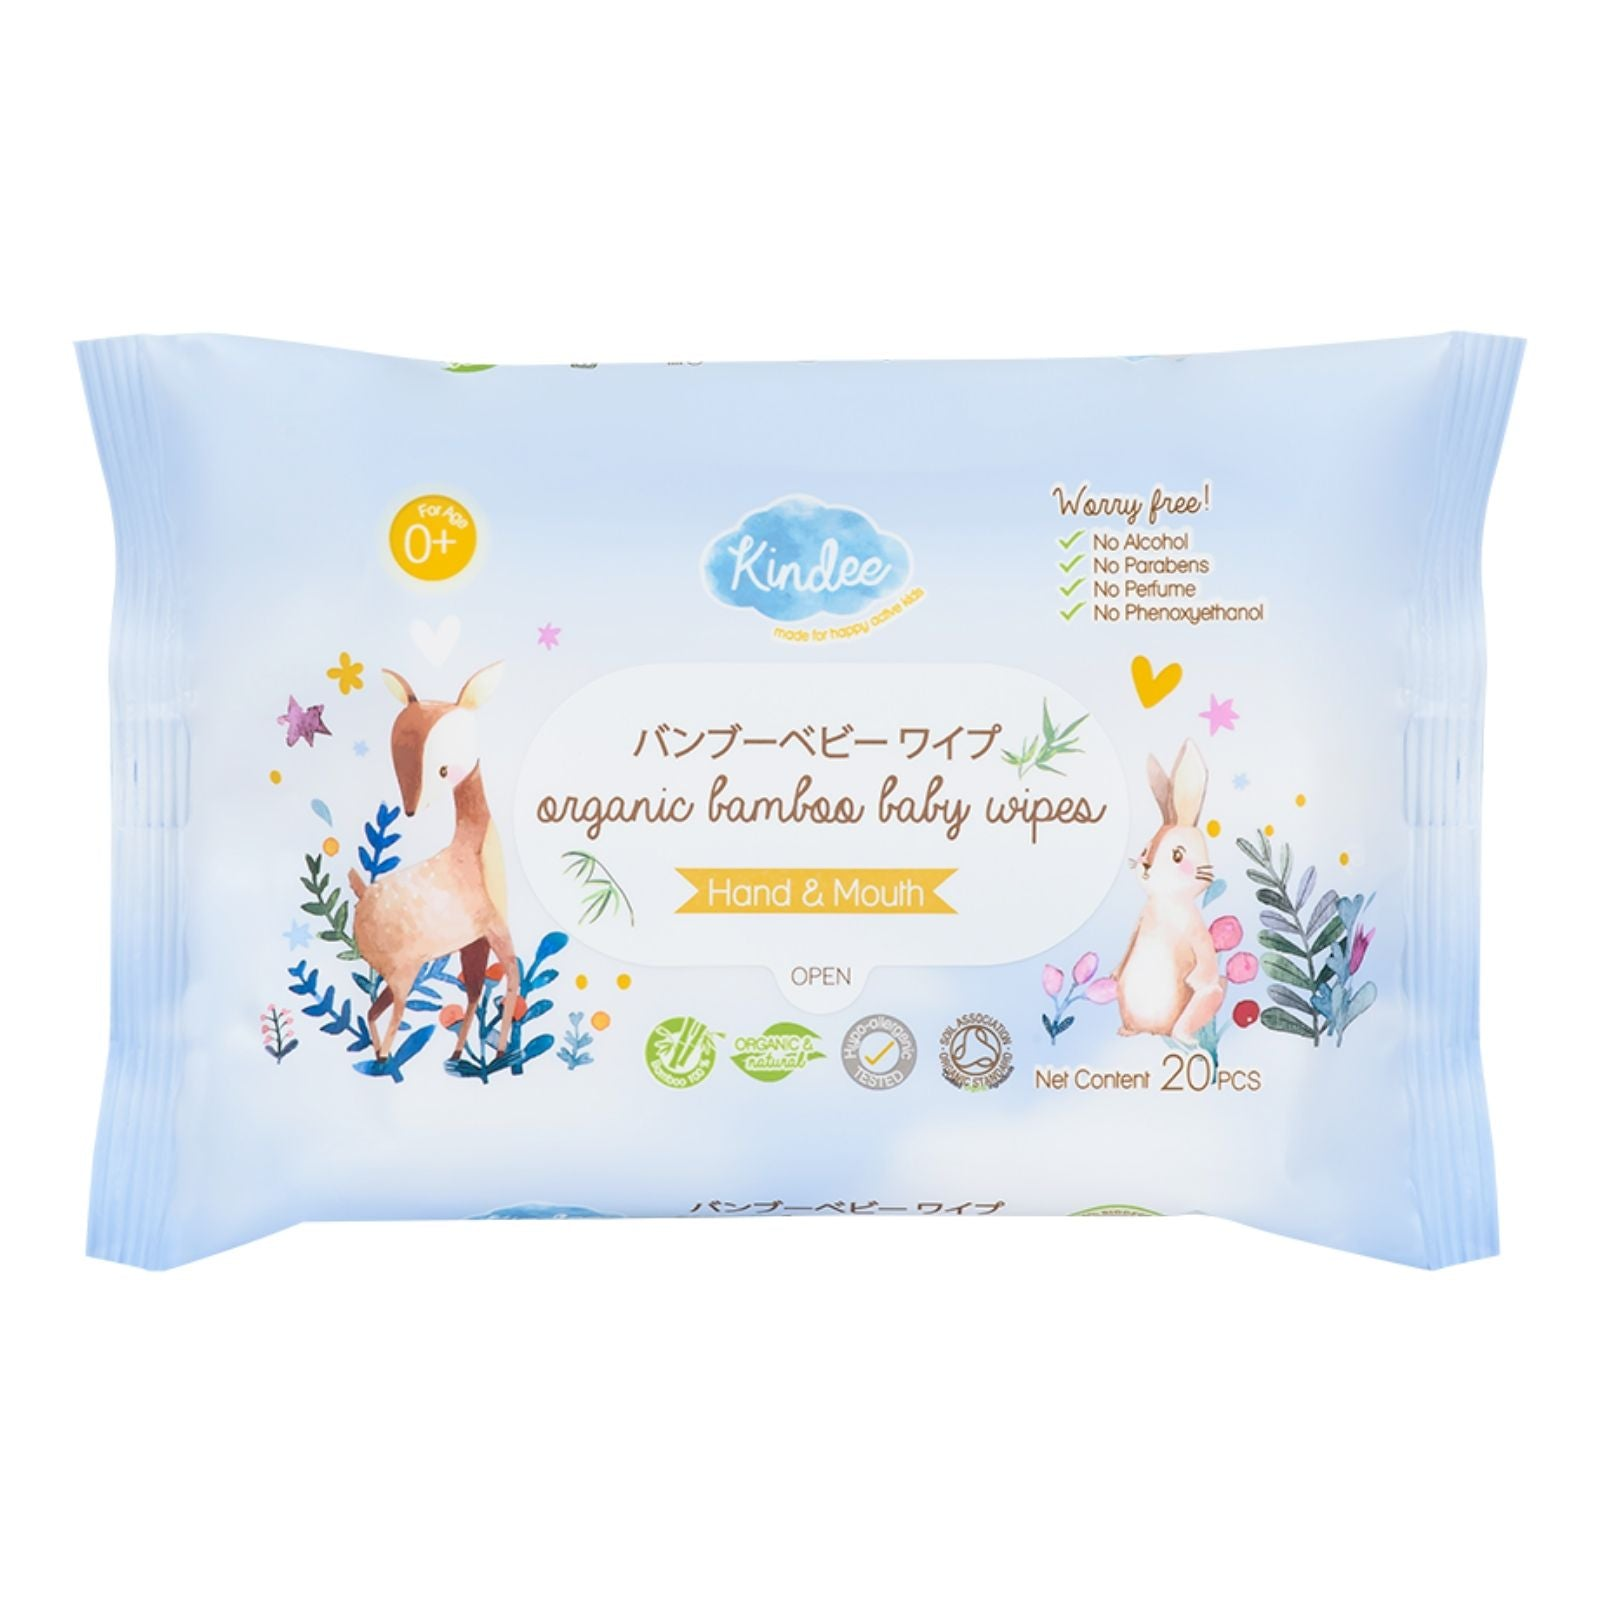 Kindee Organic Bamboo Baby Wipes (20PCS)